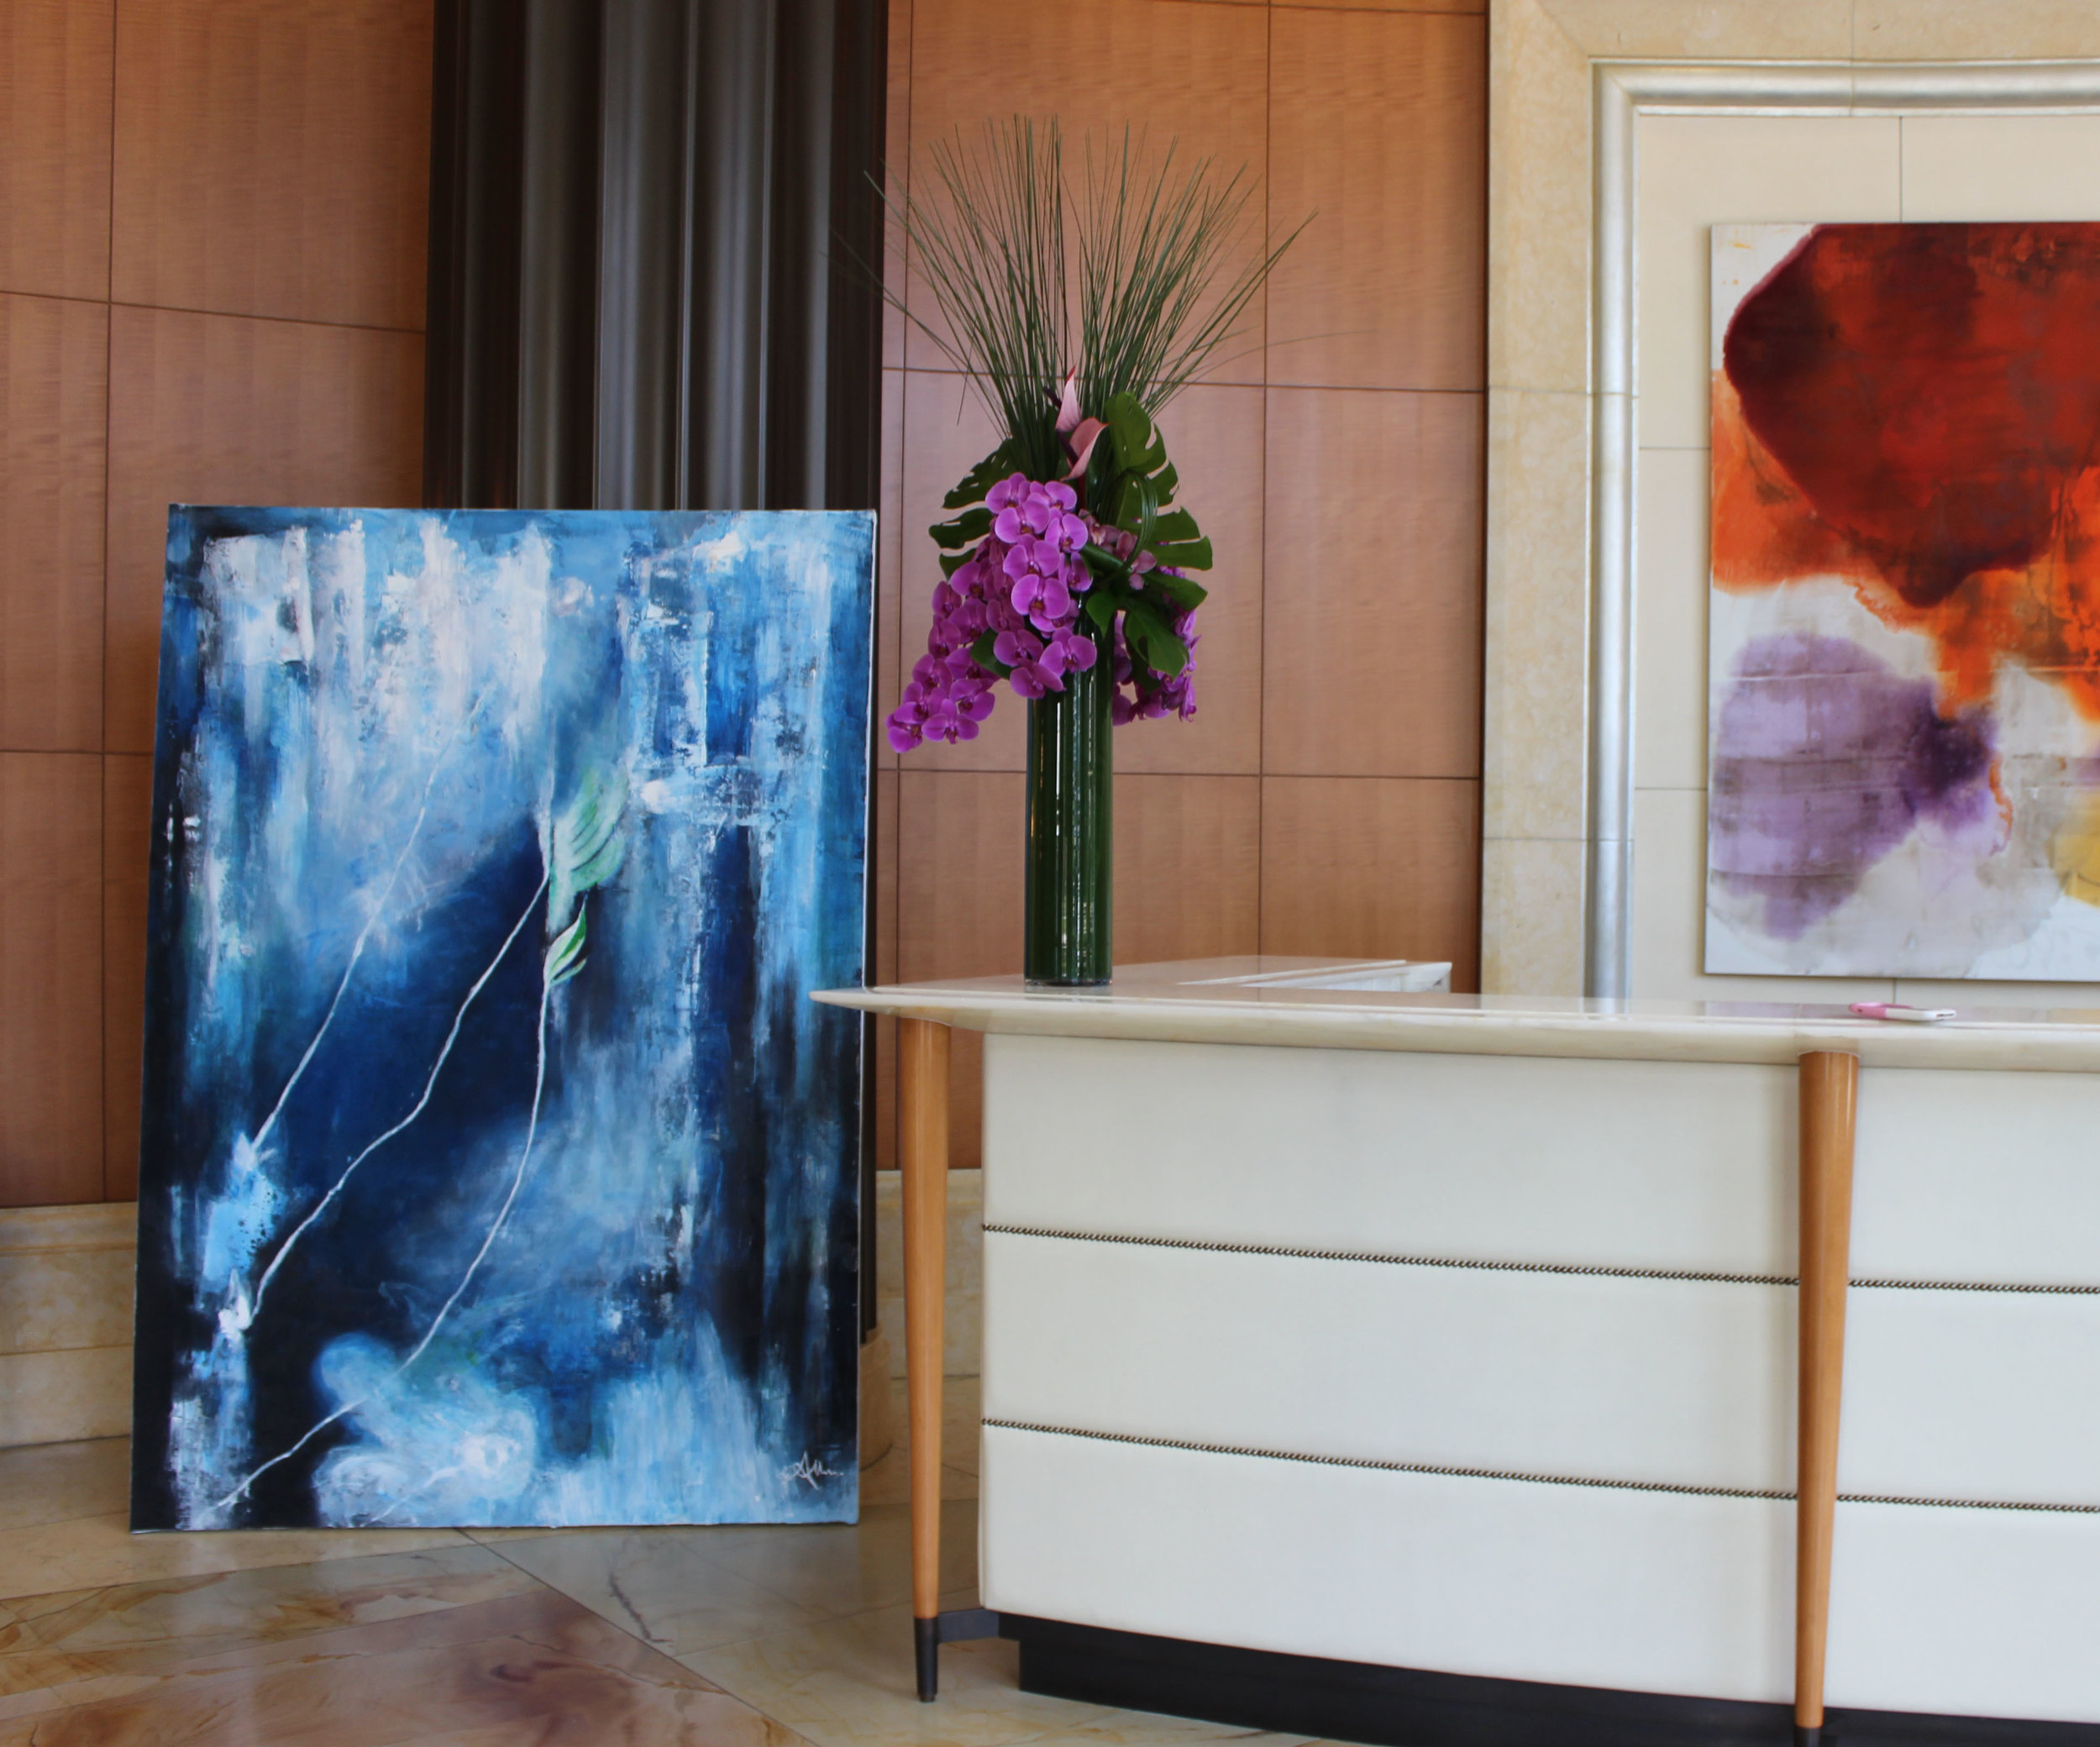 Abstract commission for celebrity dentist Dr. Bill Dorfman